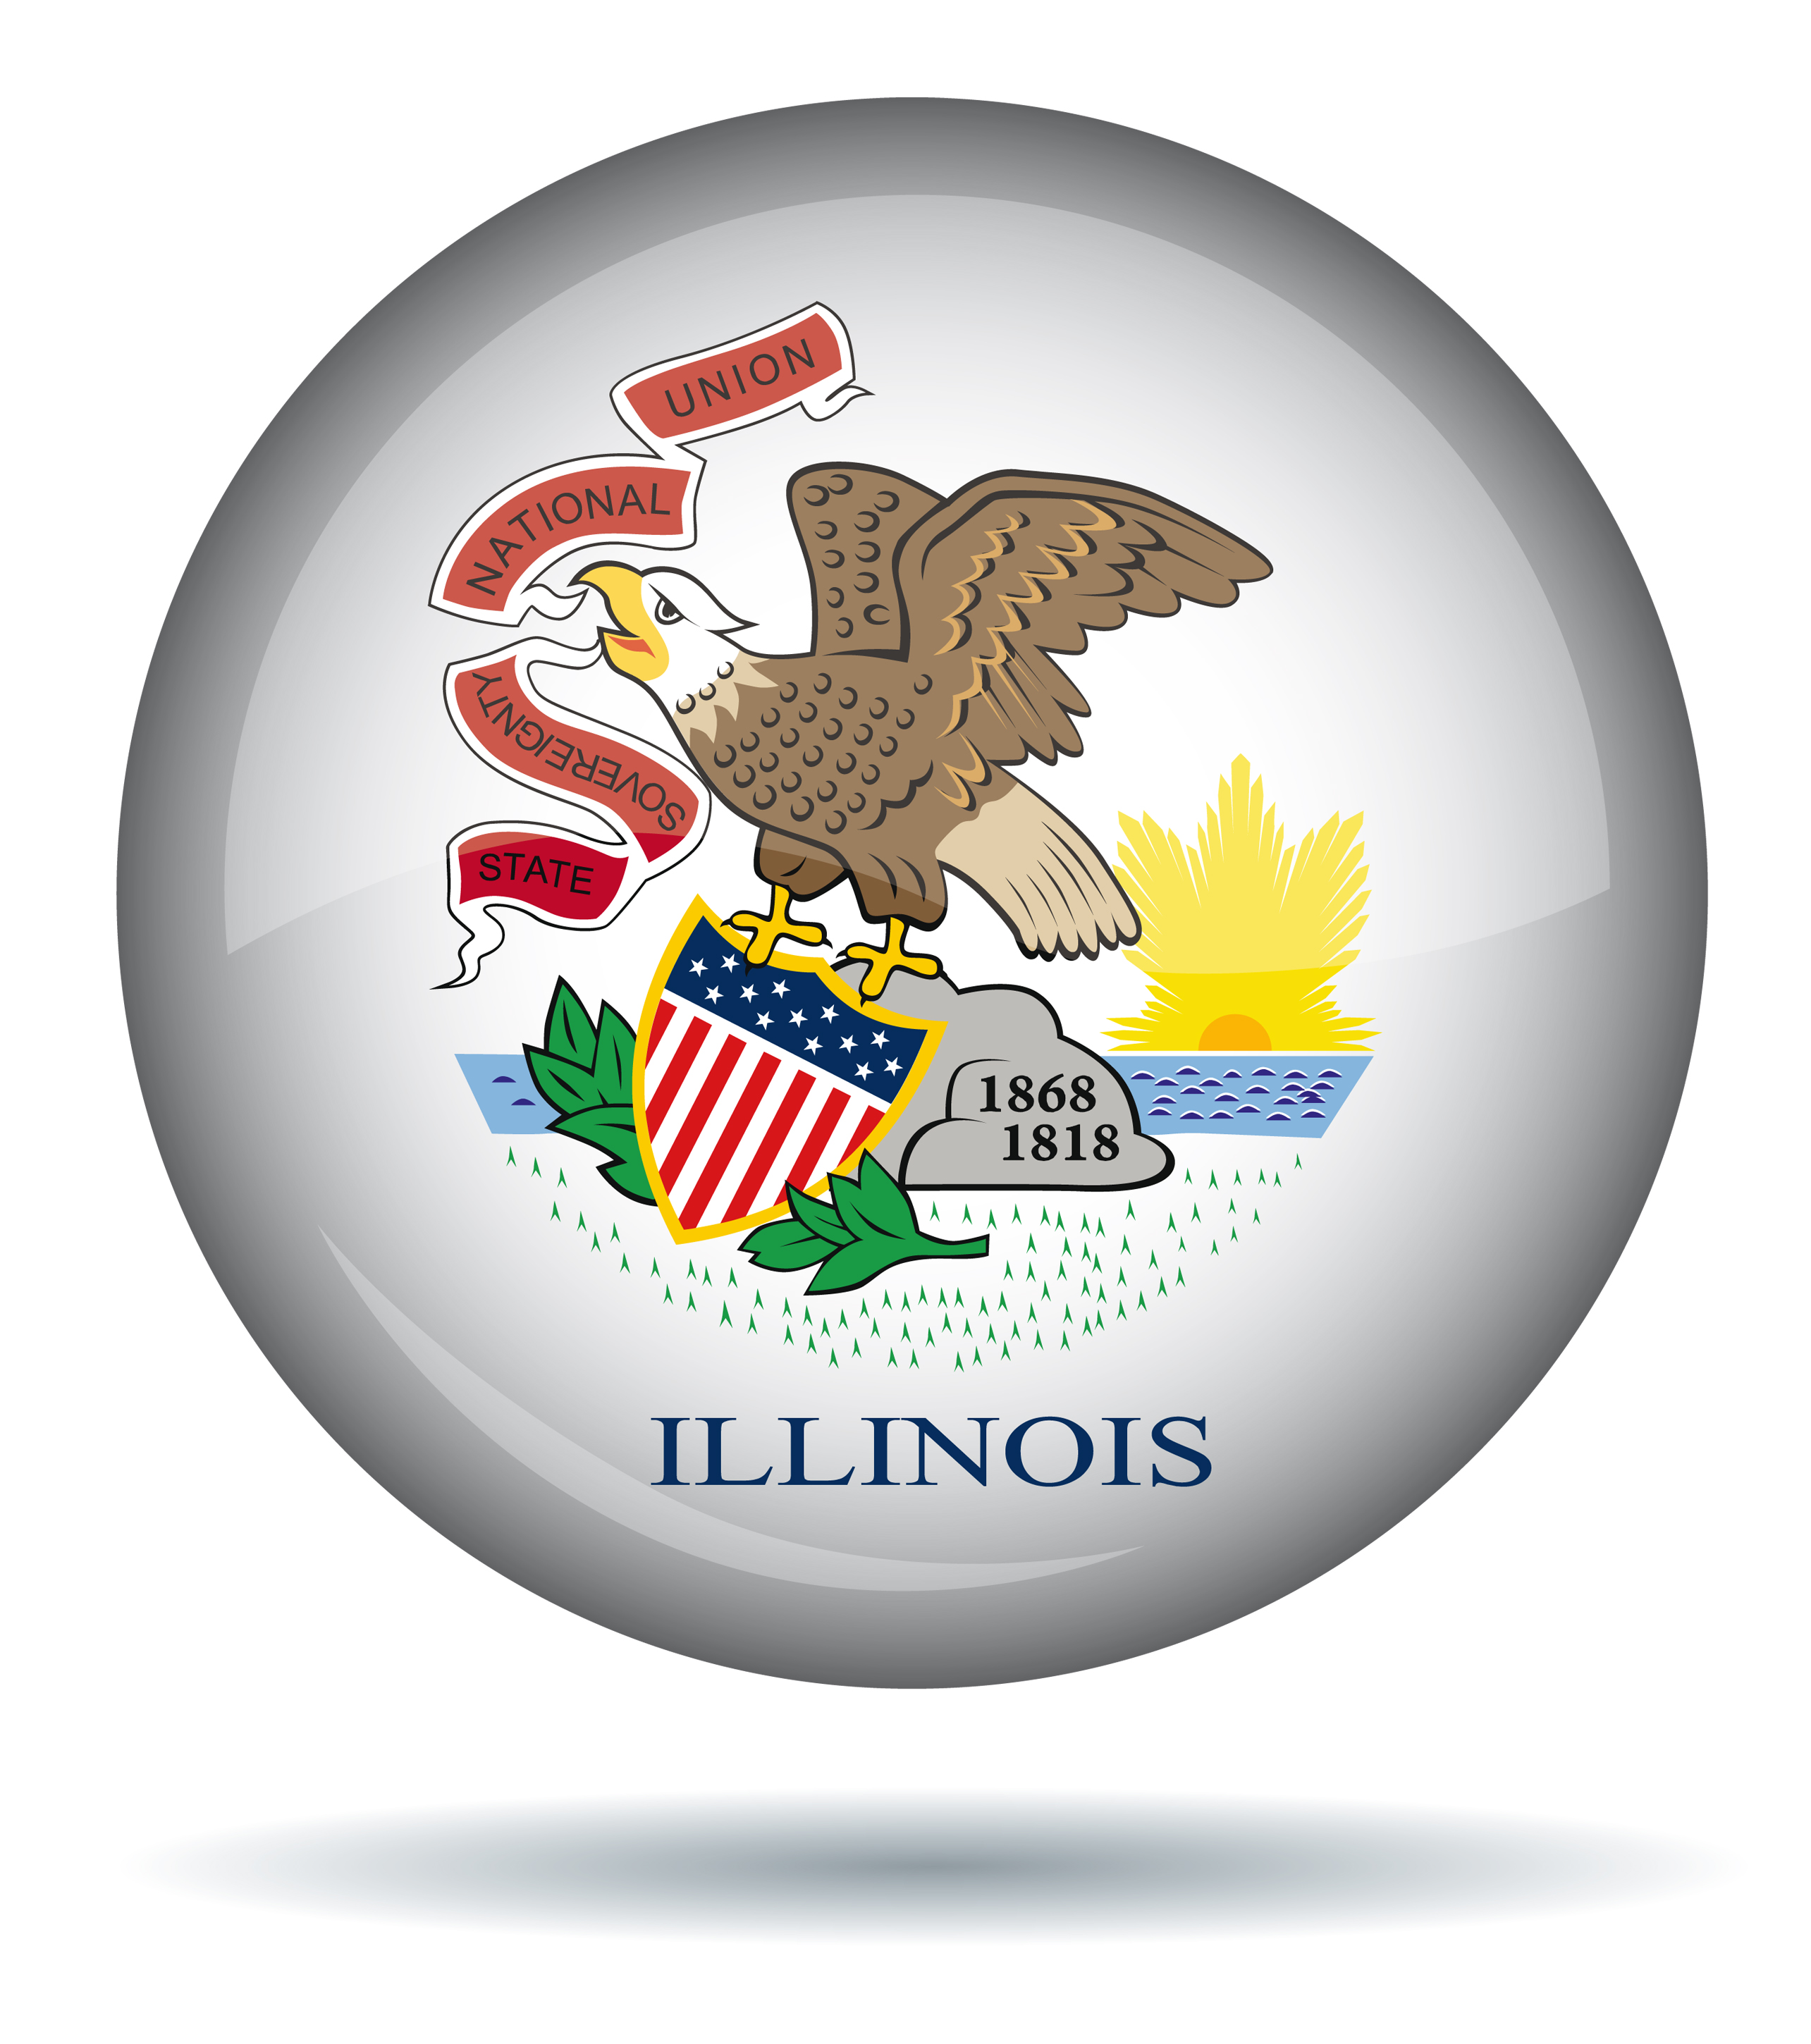 Grants For College >> College Scholarships And Grants From The State Of Illinois Il